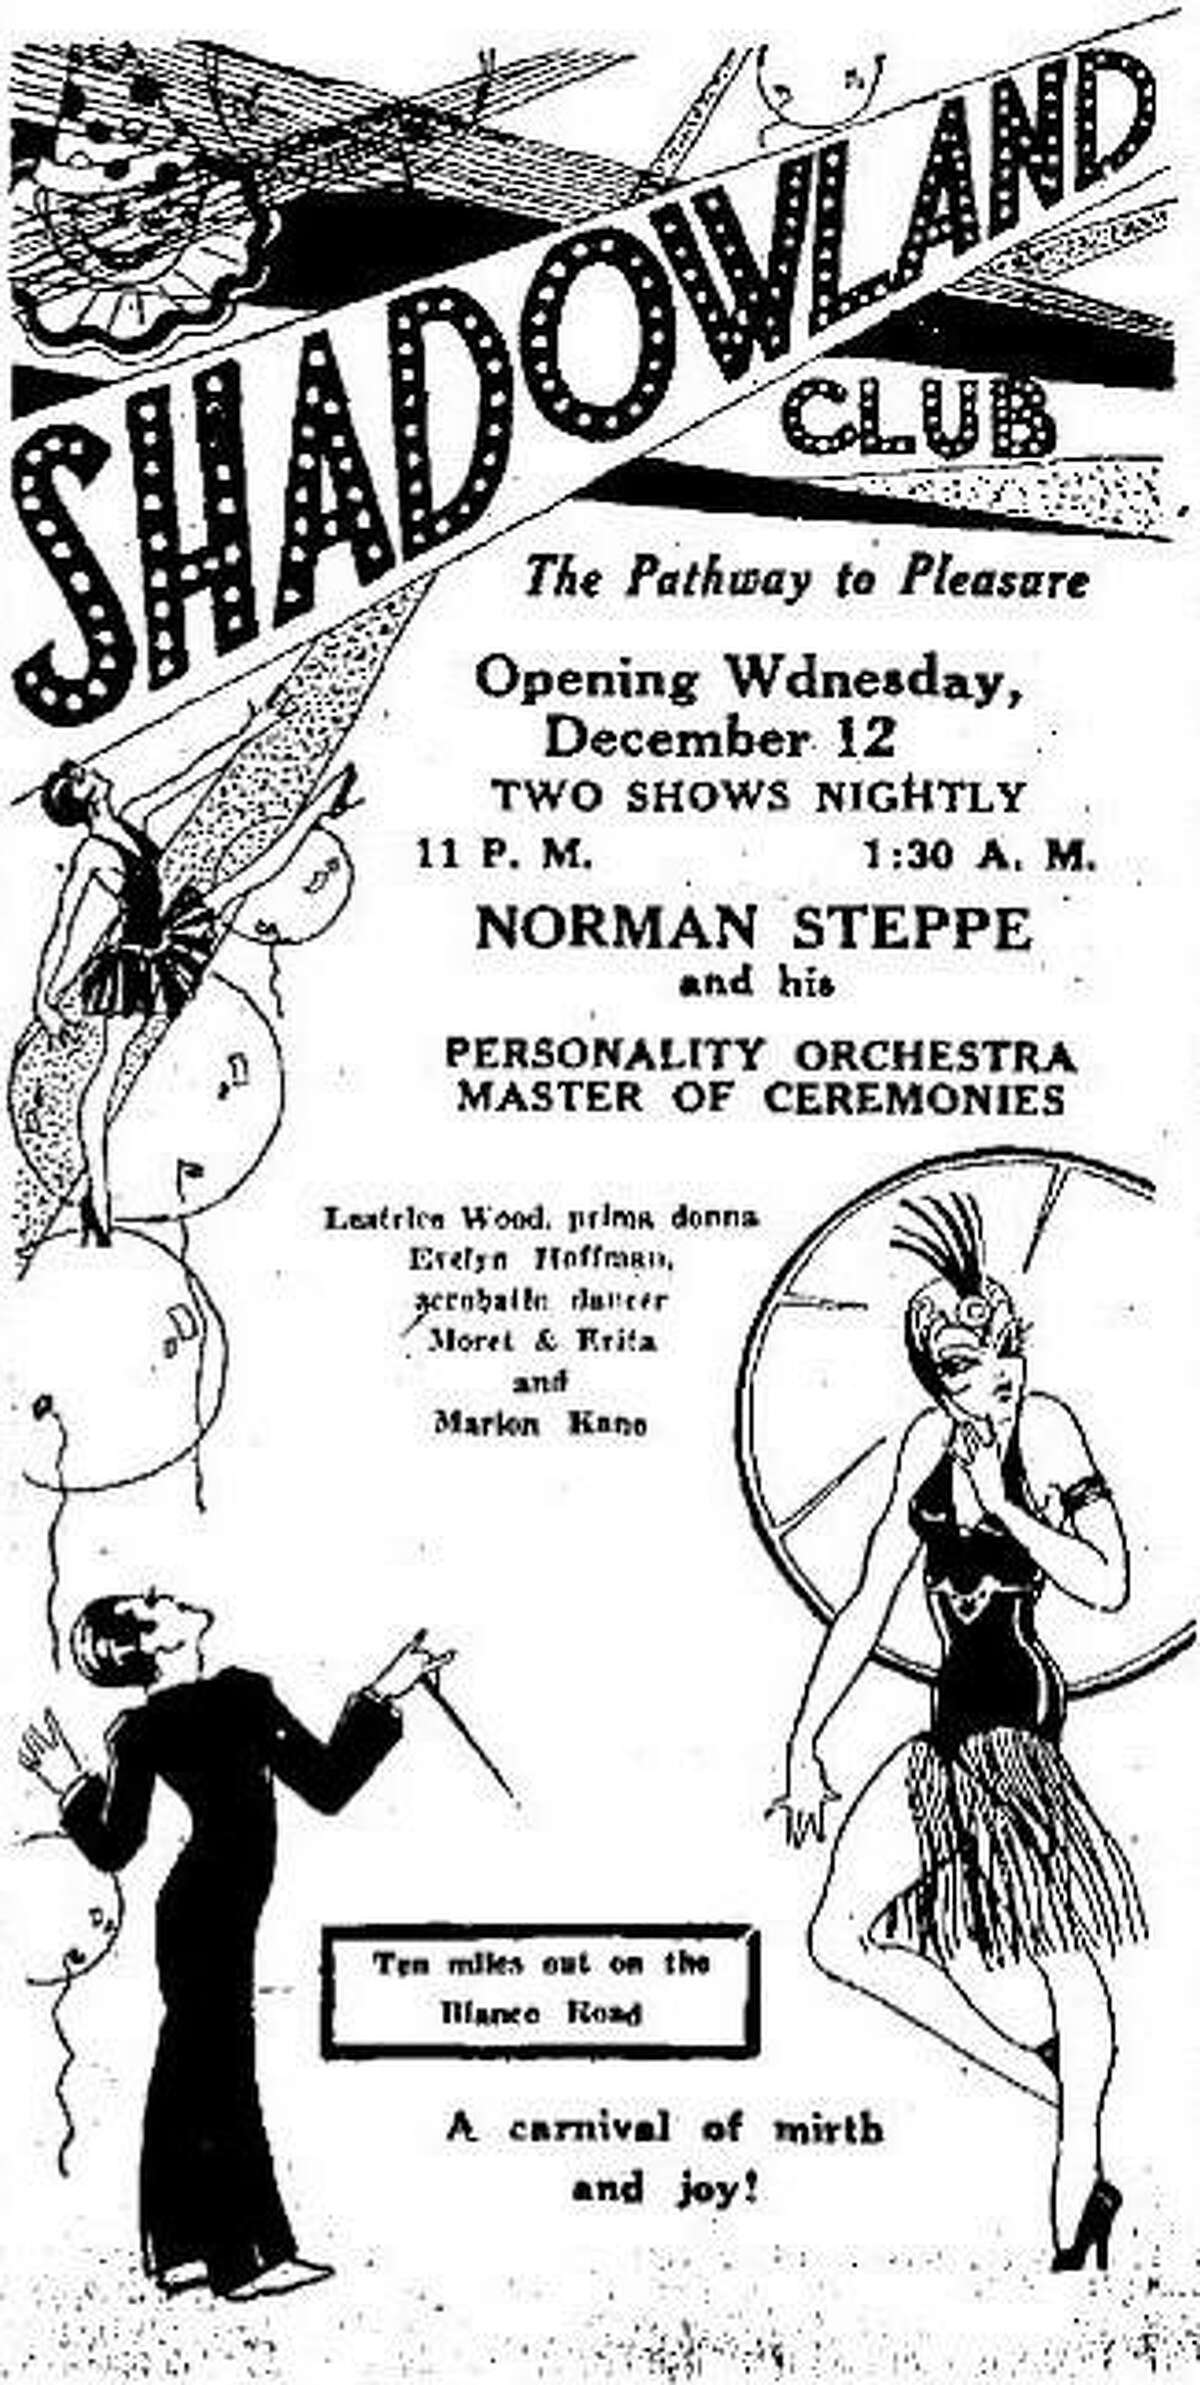 """A 1928 advertisement in the San Antonio Light touted the legendary speakeasy """"10 miles out on the Blanco Road."""""""